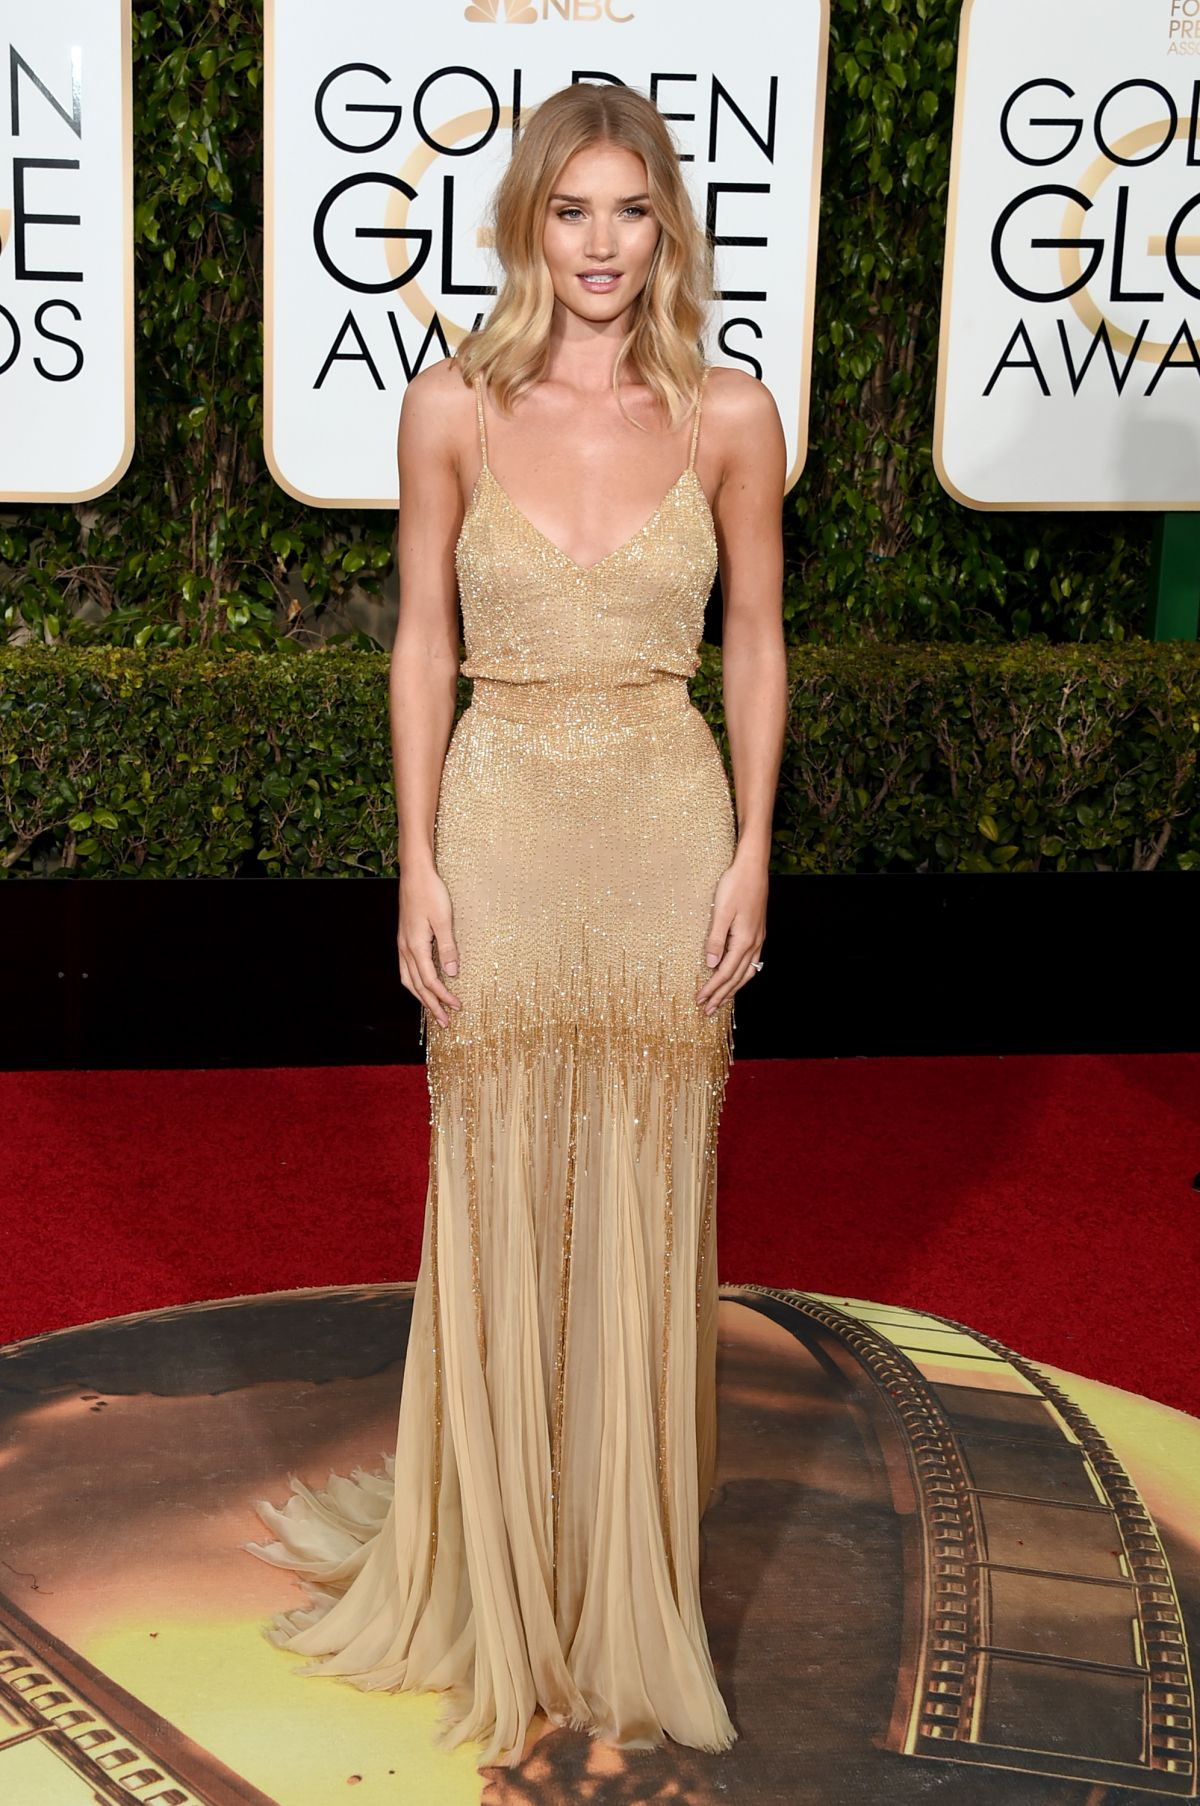 ROSIE HUNTINGTON-WHITELEY at 73rd Annual Golden Globe Awards in Beverly Hills 10/01/2016